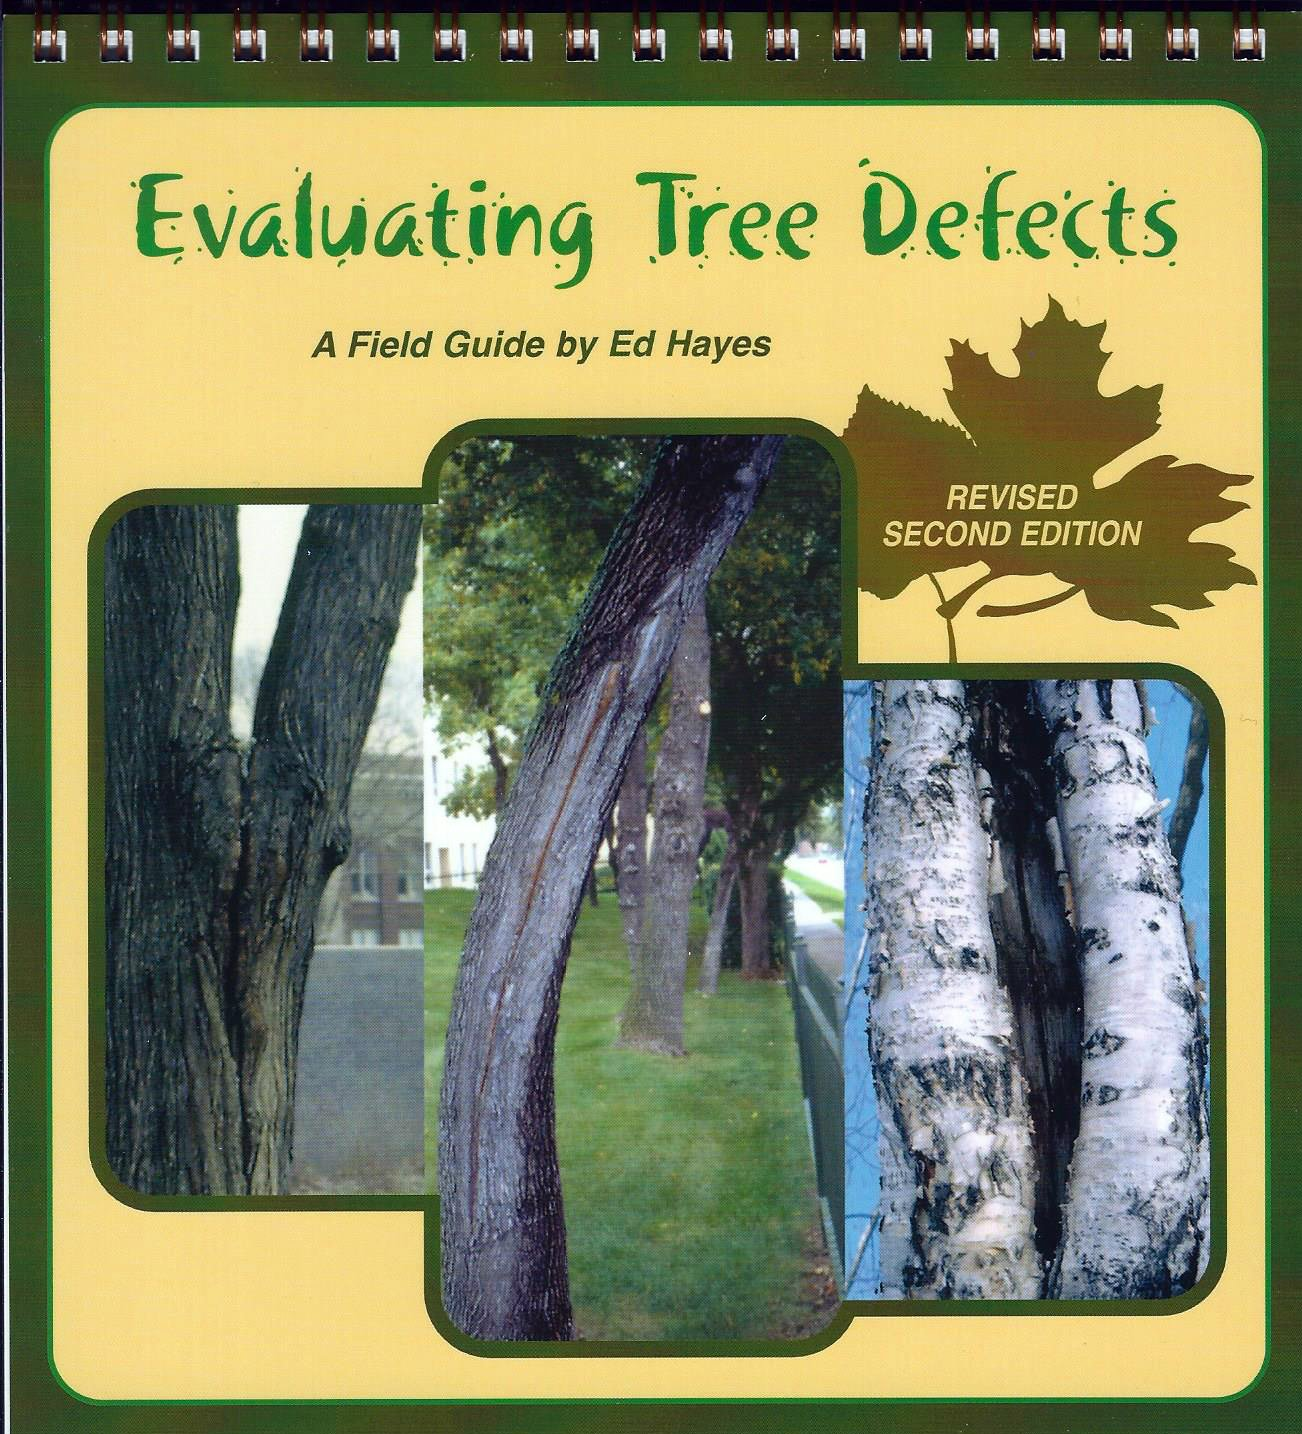 Evaluating Tree Defects: Revised Second Edition